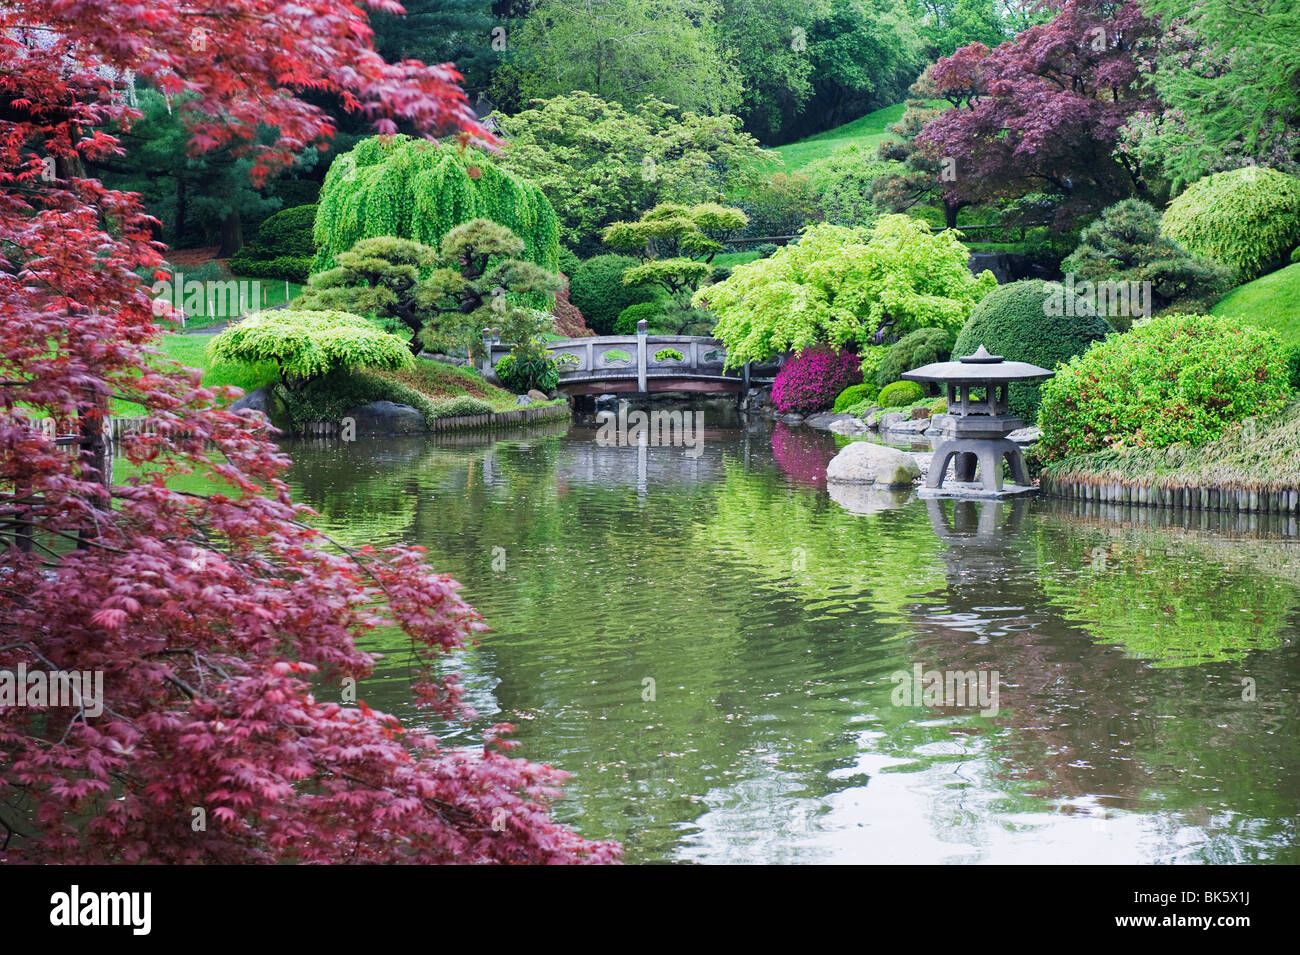 Incroyable Japanese garden, Brooklyn Botanical Garden, Brooklyn, New York GI-27